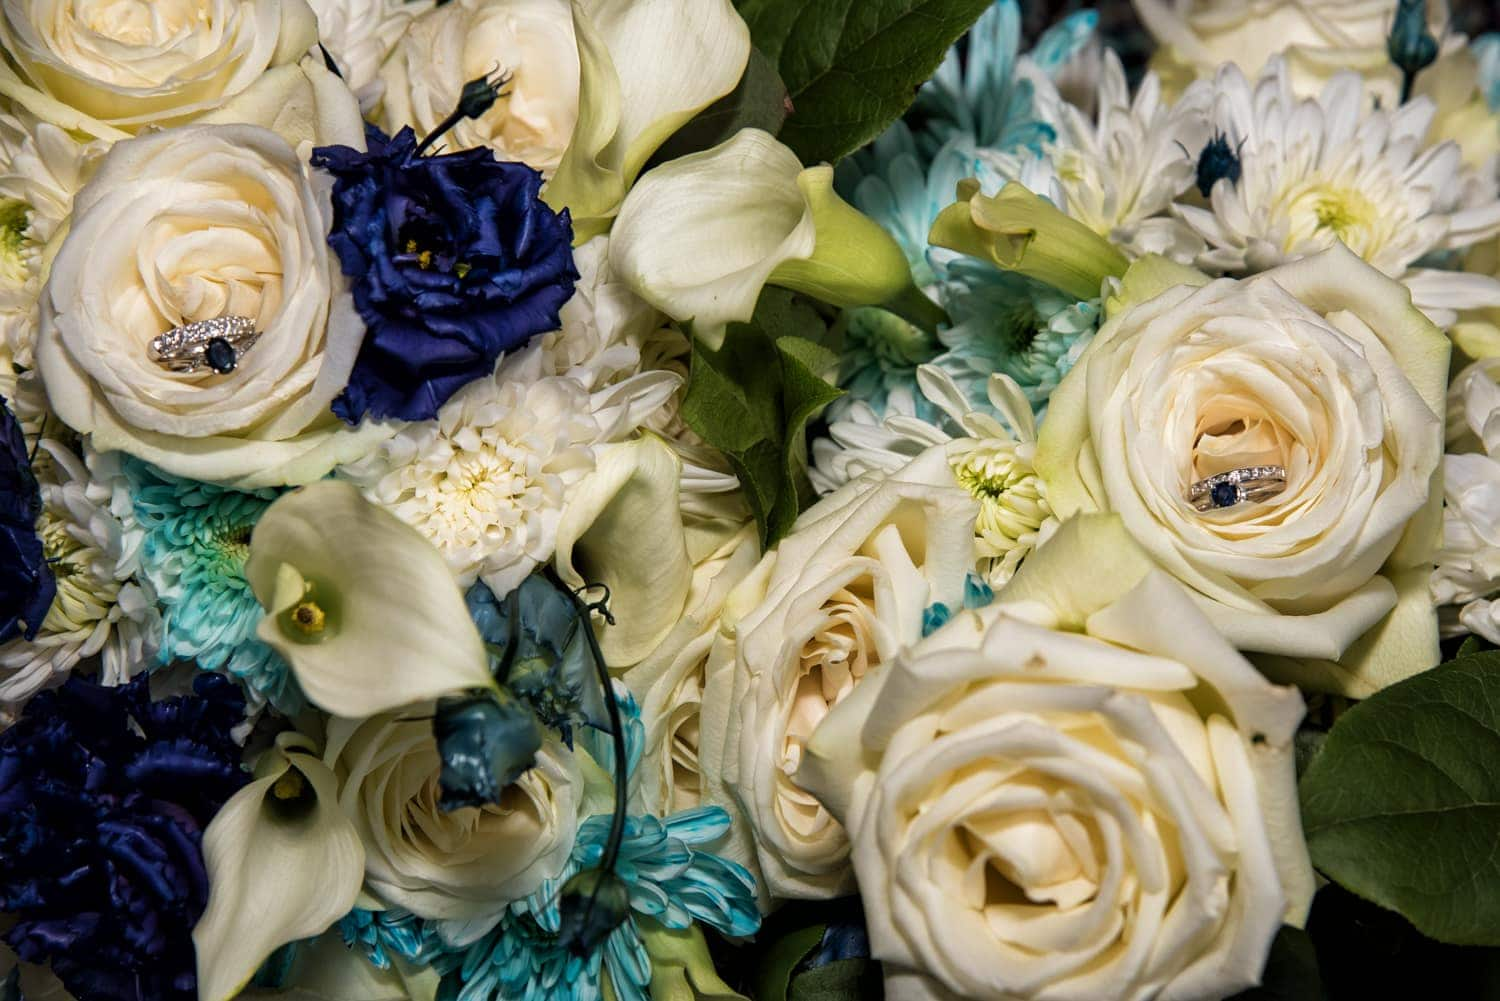 A wedding bridal bouquet of ivory and navy roses and flowers.